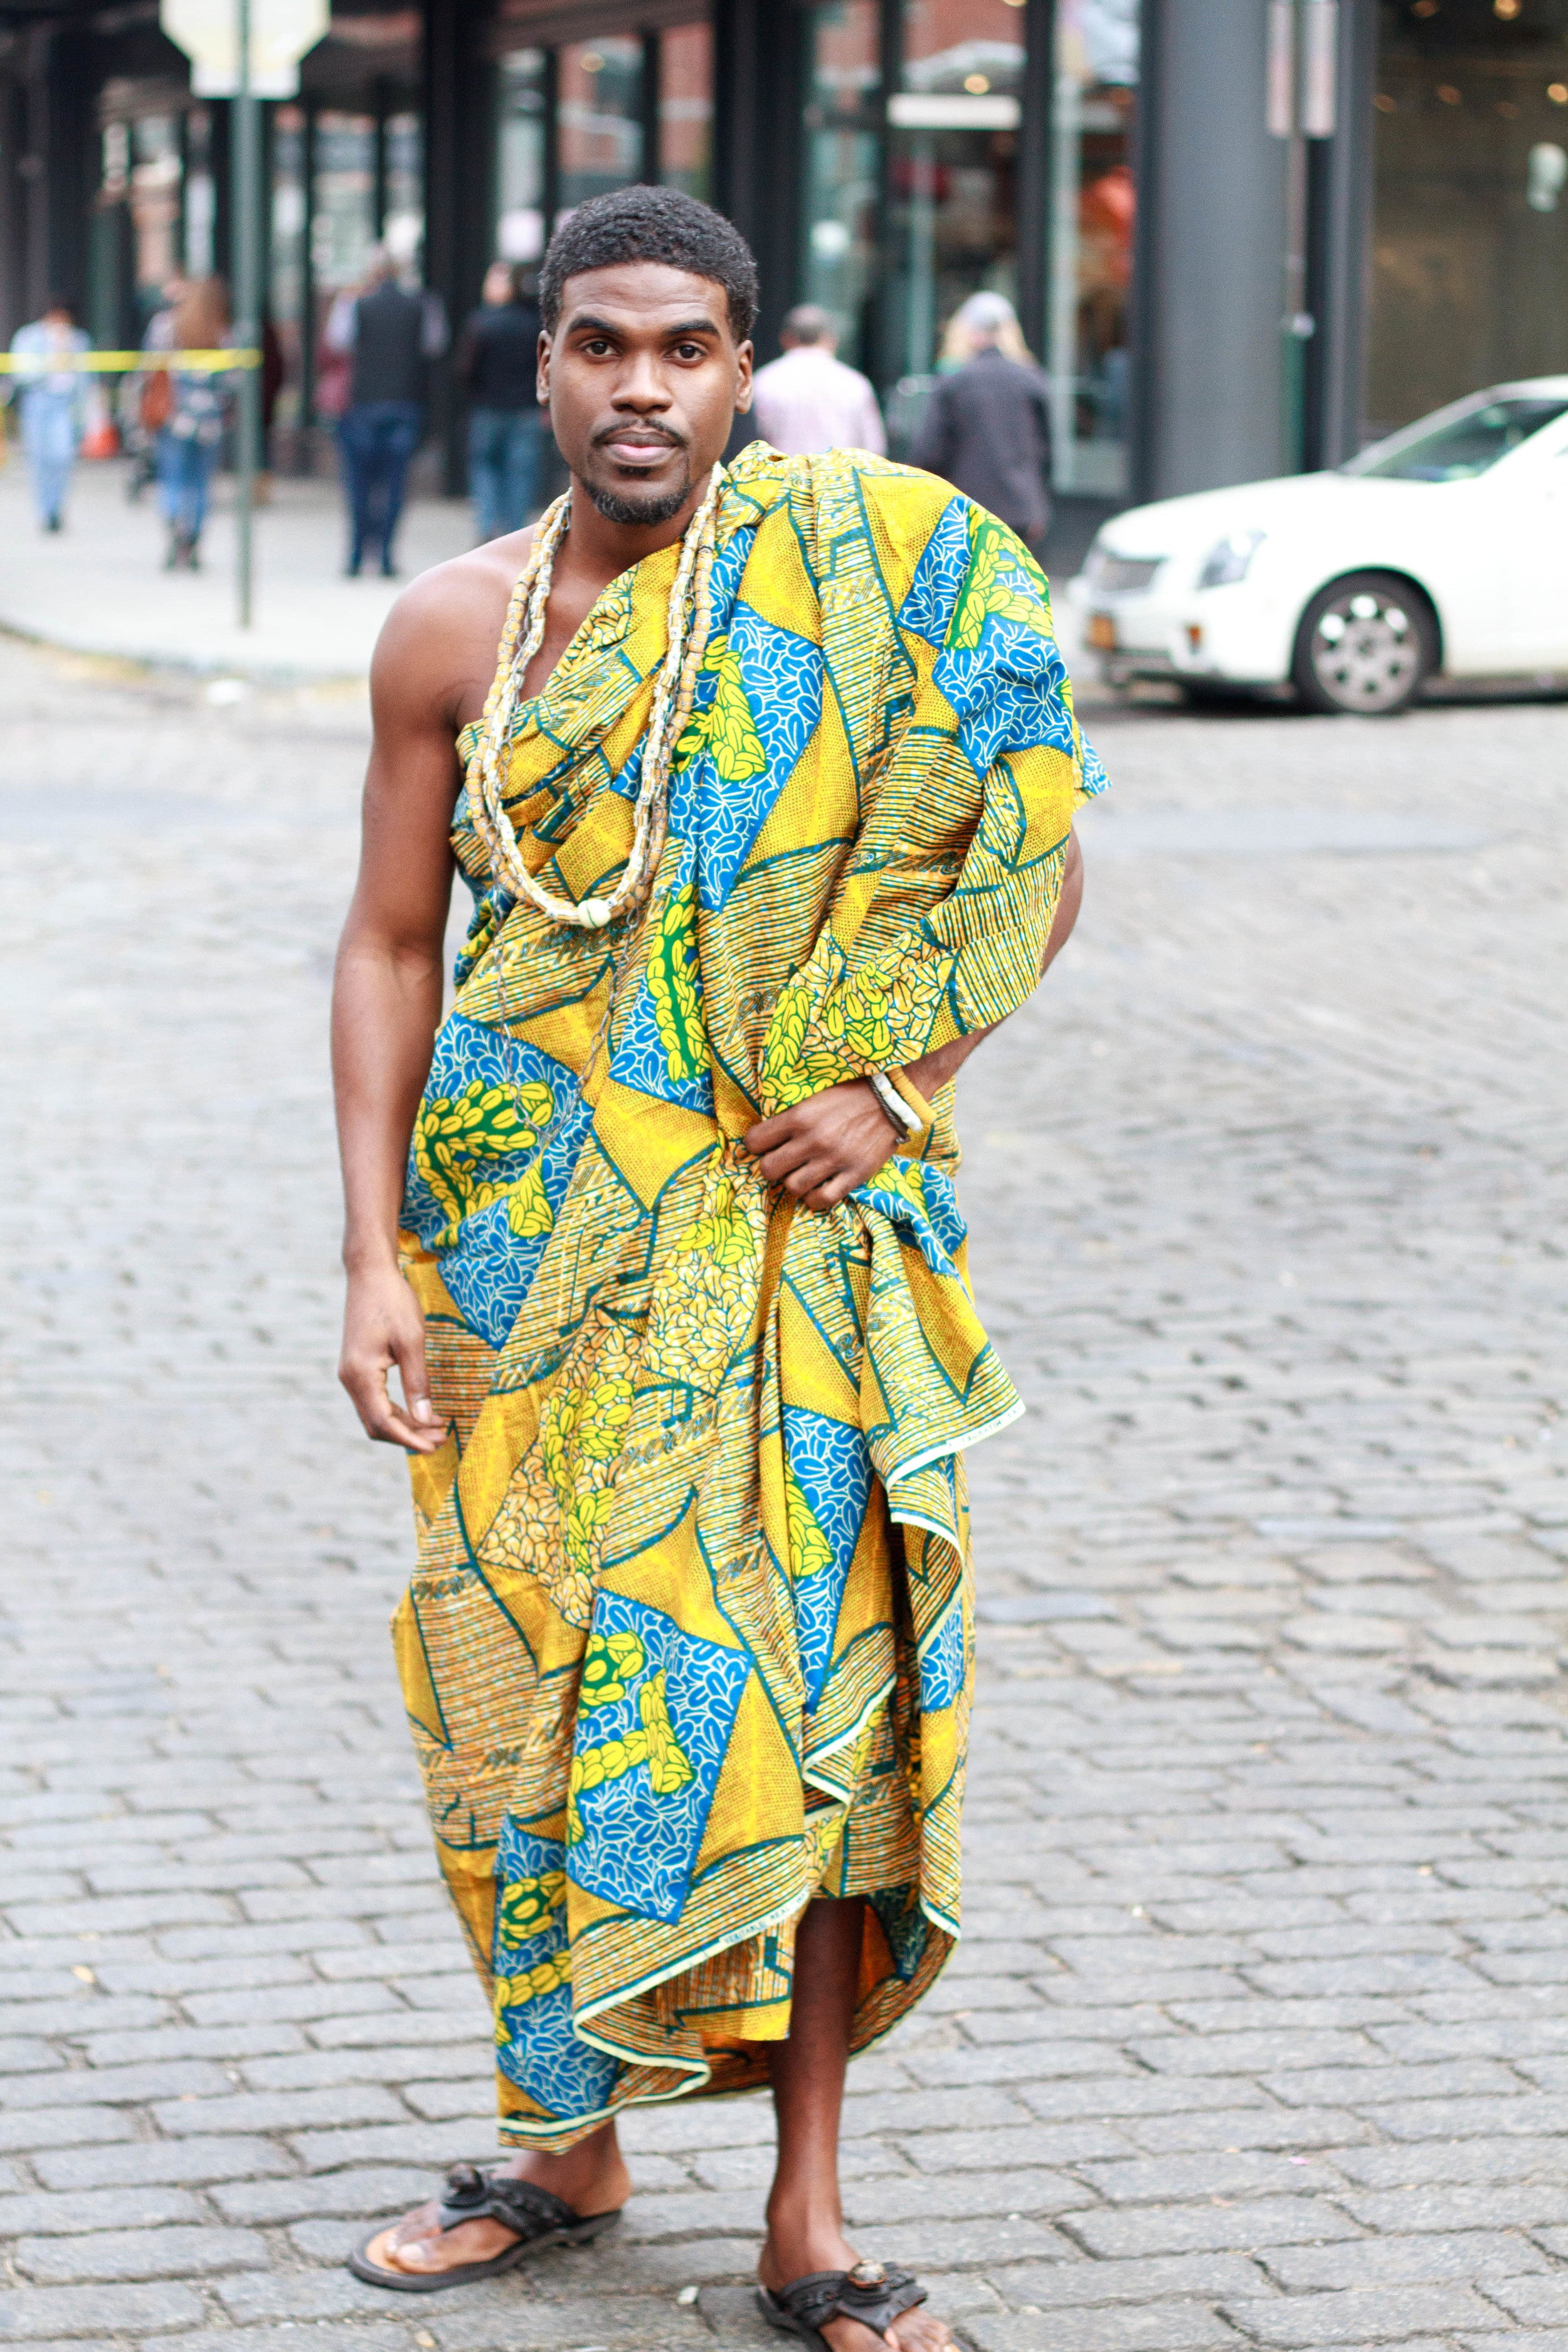 We Found Social Media Sensation 'African Bae' (and He Totally Lives Up to the Hype)